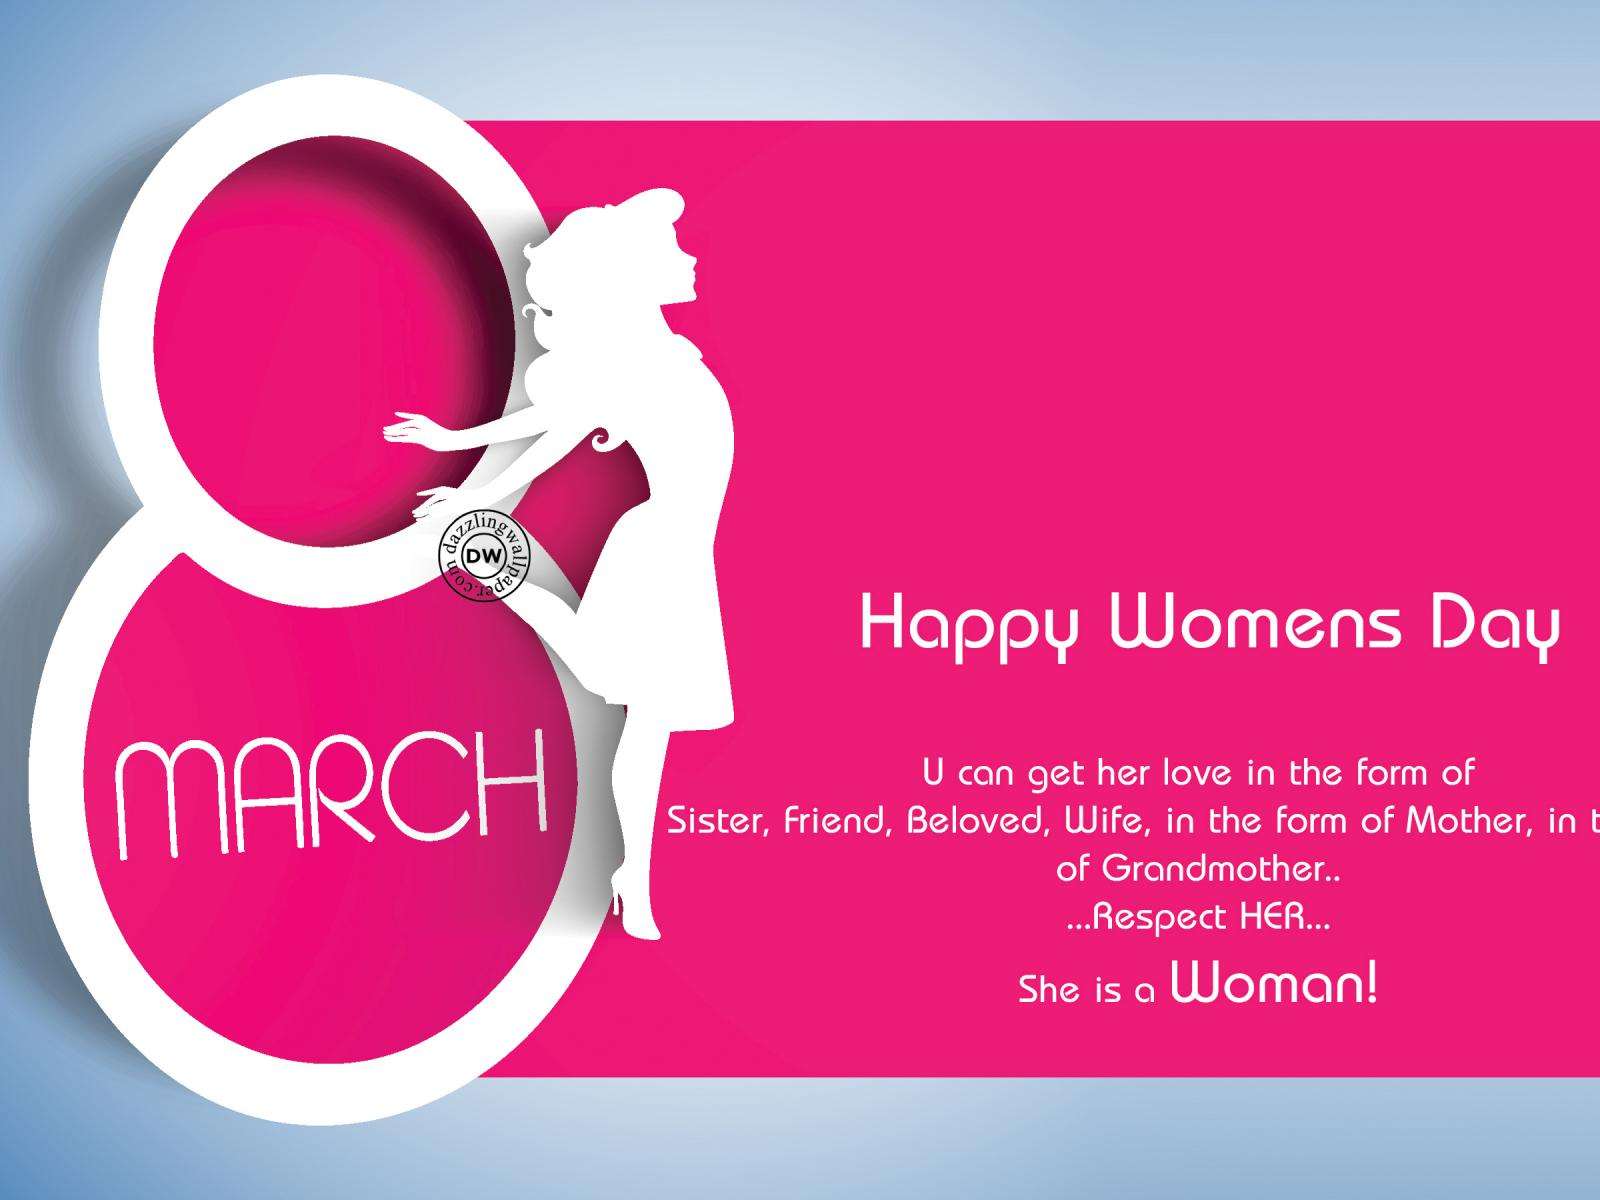 International Womans Day Wallpaper 2   2880 X 1800 stmednet 1600x1200